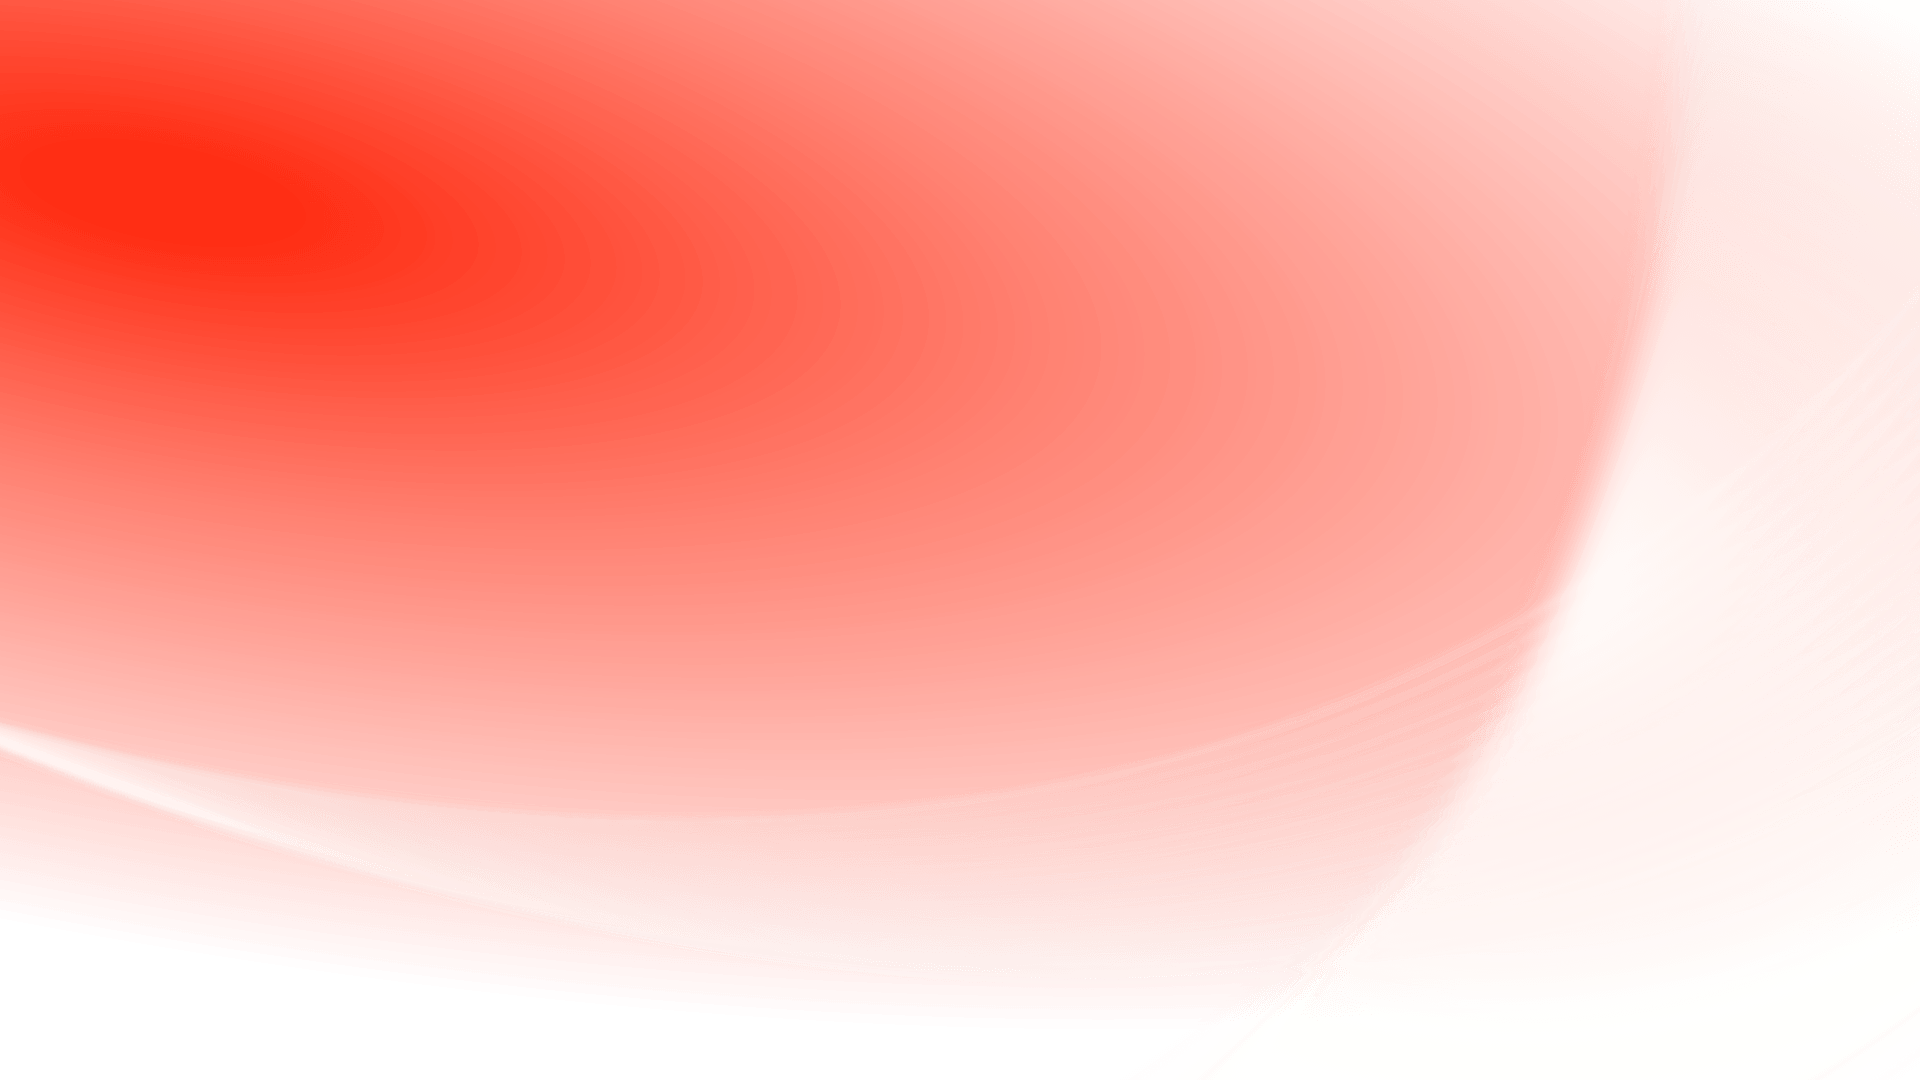 red gradient png